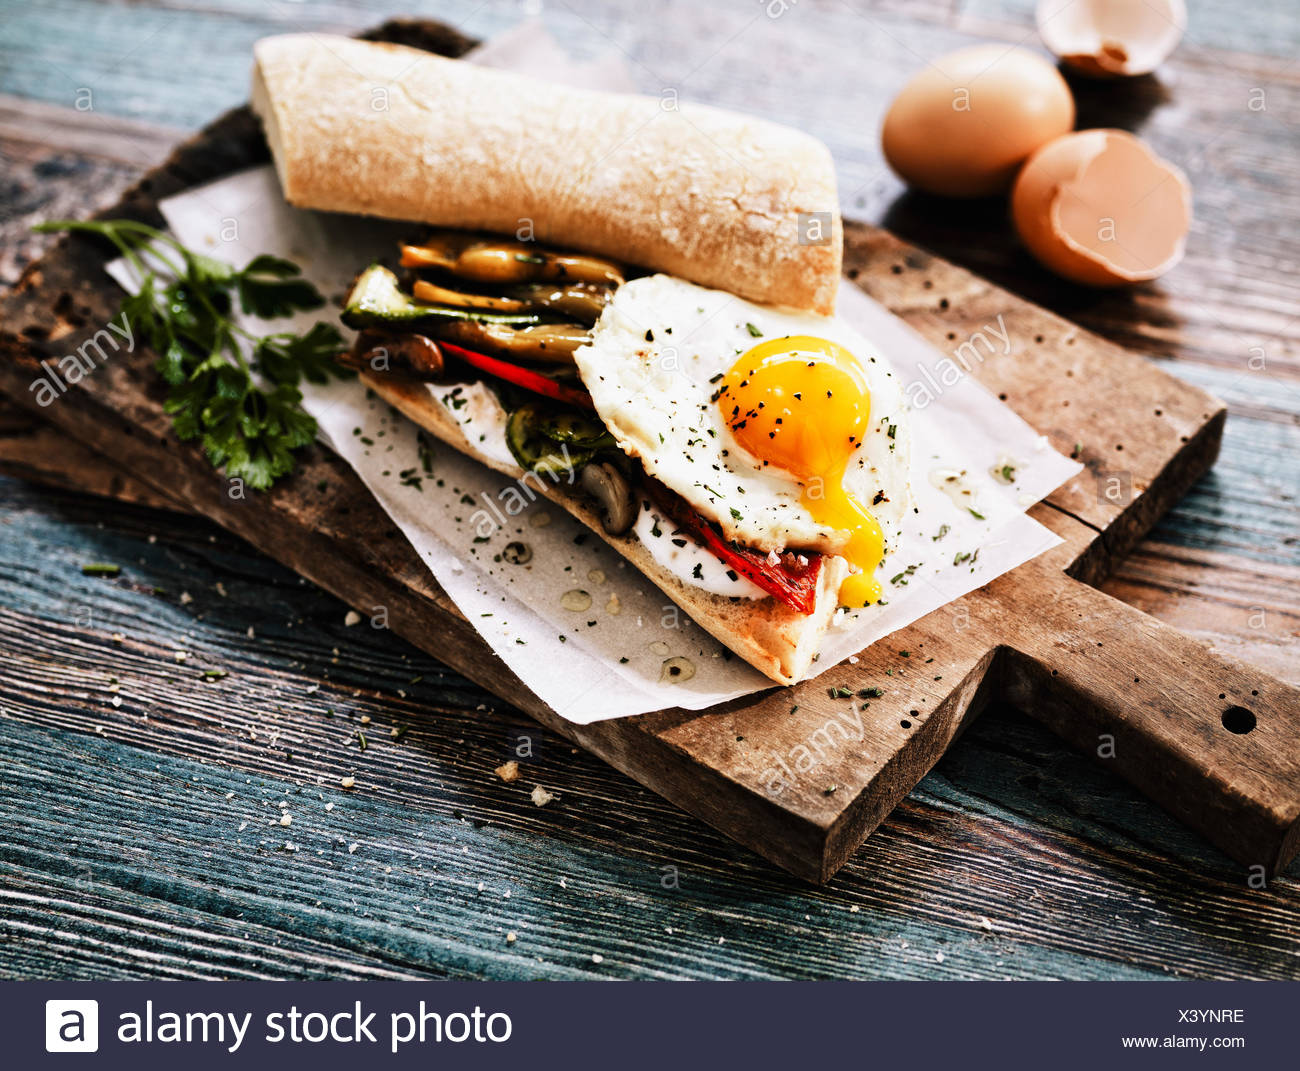 Sandwich with grilled vegetables and sunny side up egg - Stock Image